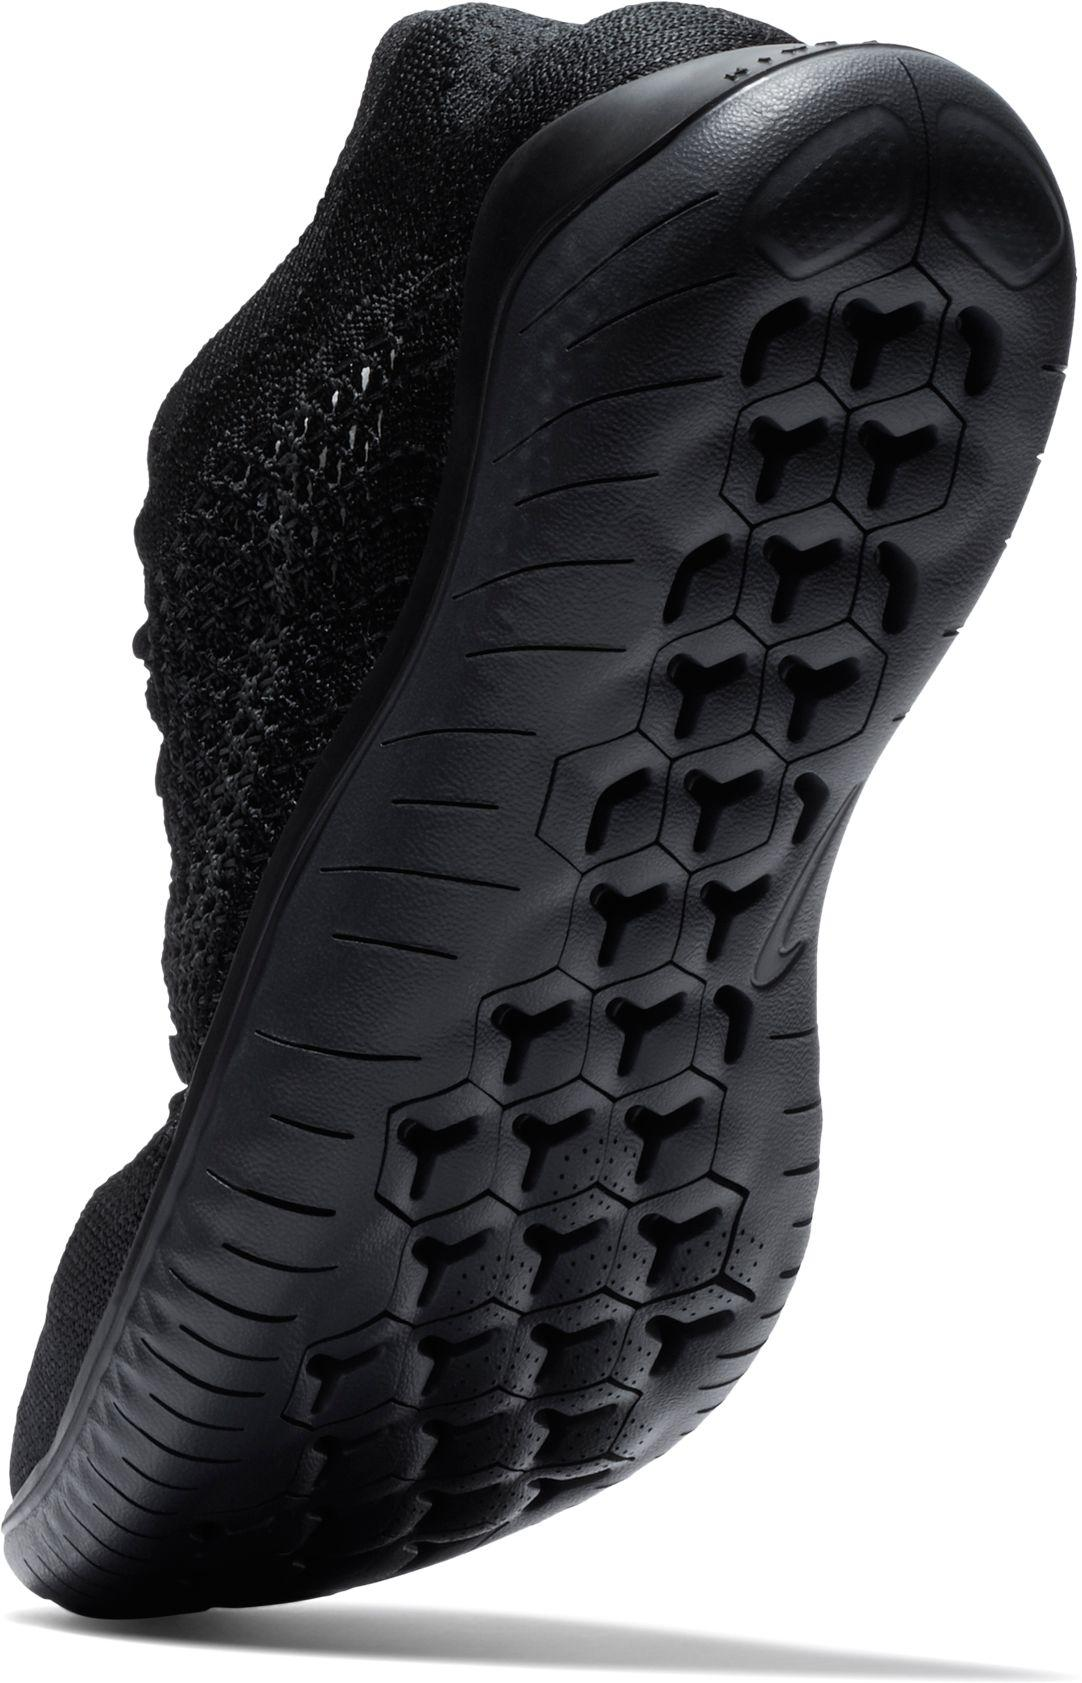 55968c5bb1ee Lyst - Nike Free Rn Flyknit 2018 Running Shoes in Black